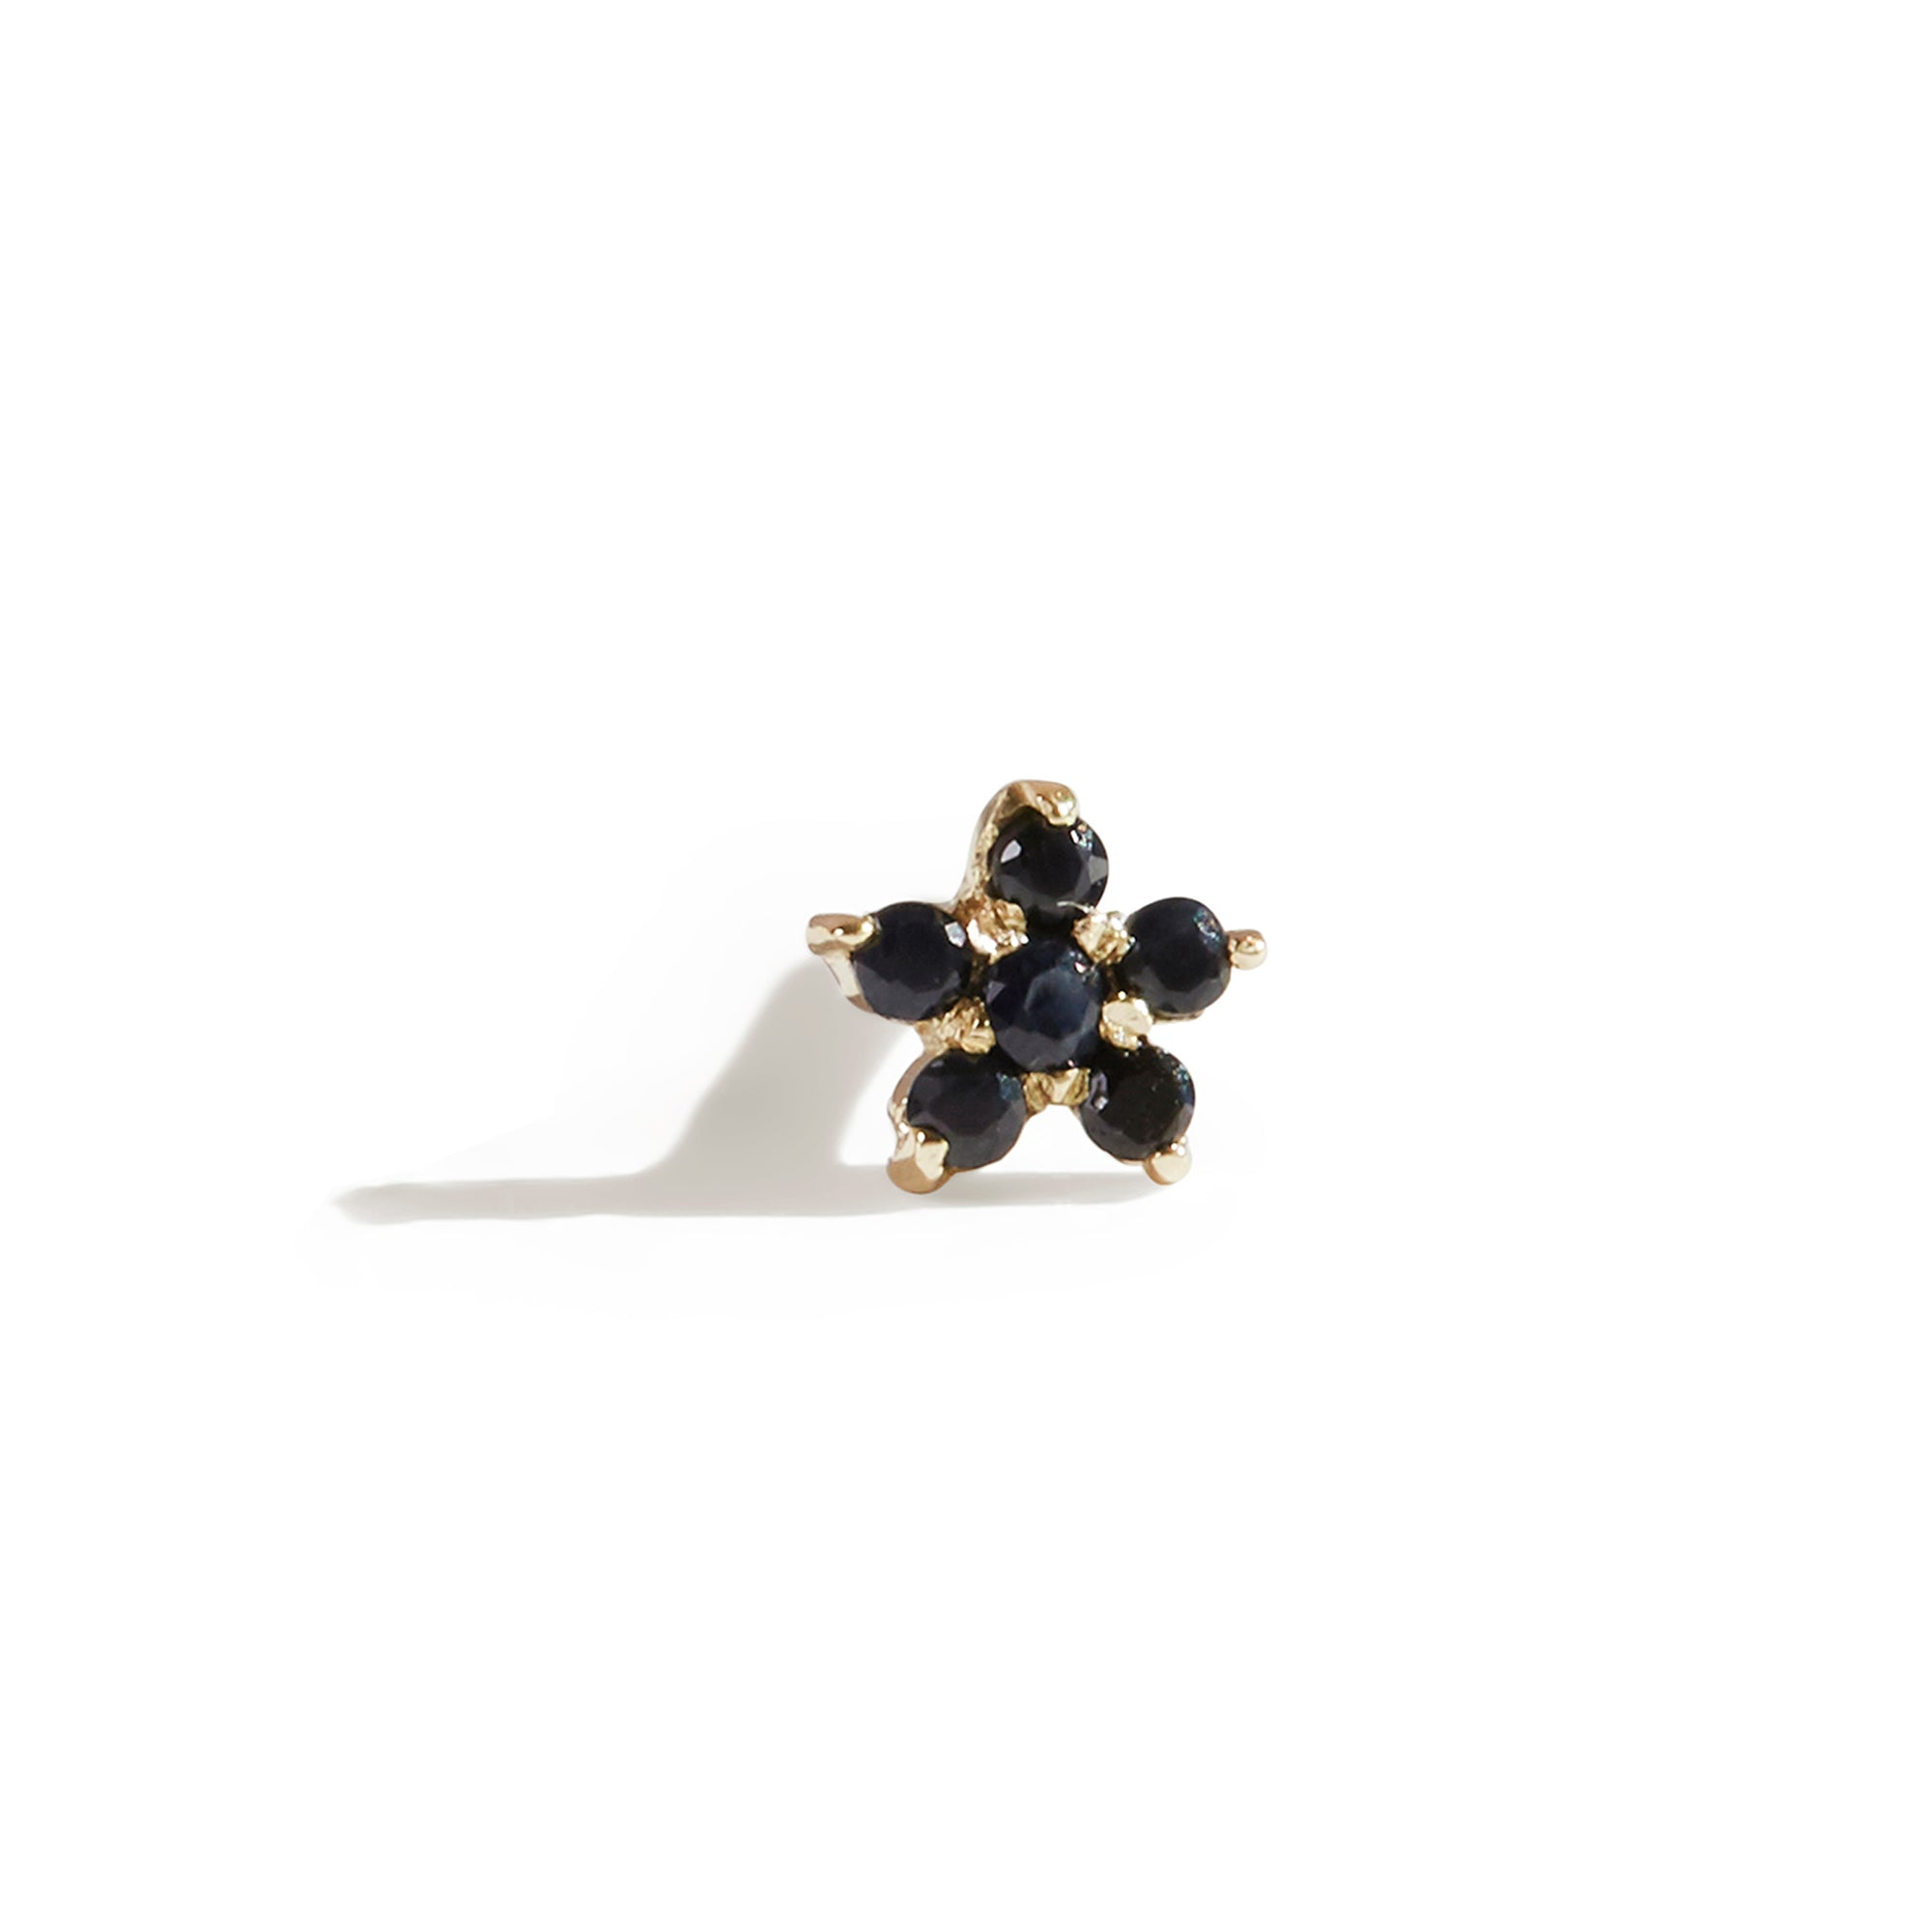 The Black Sapphire Flower Stud in 9kt Gold